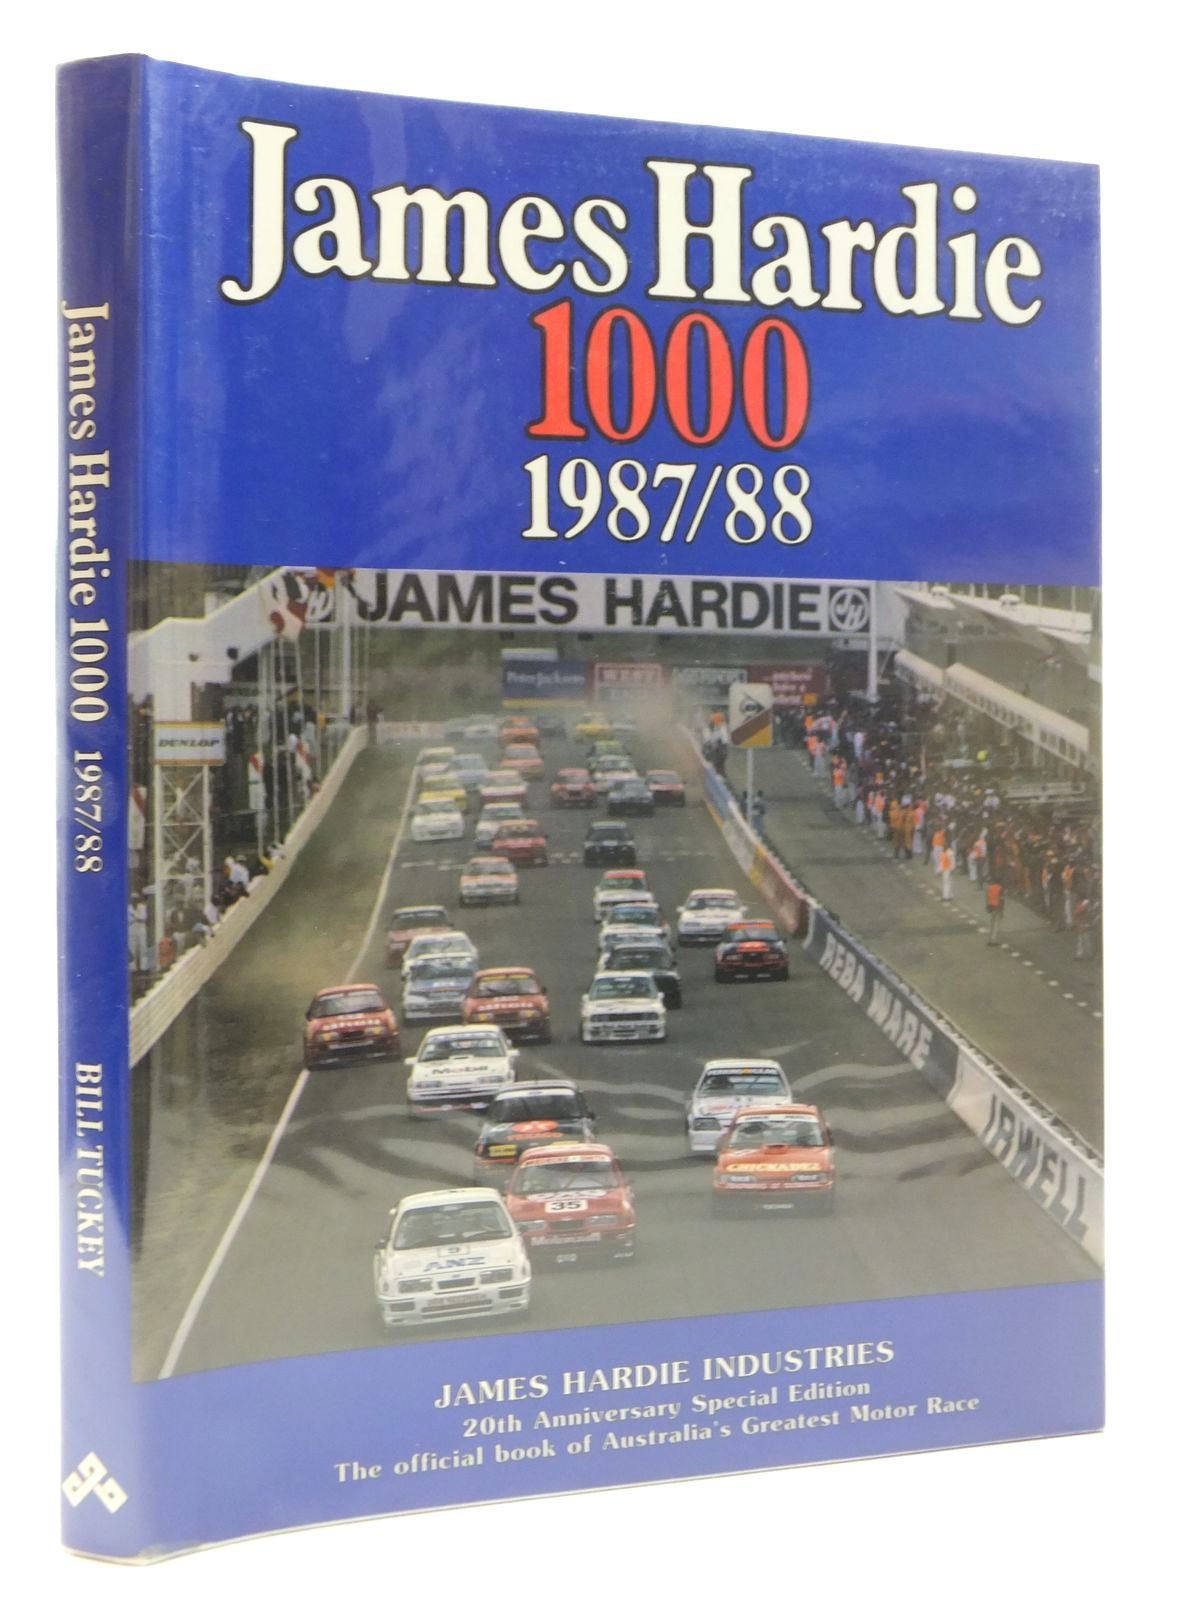 Photo of JAMES HARDIE 1000 THE GREAT RACE 1987 / 88 written by Tuckey, Bill published by Berghouse Floyd Tuckey Publishing Group (STOCK CODE: 1609863)  for sale by Stella & Rose's Books